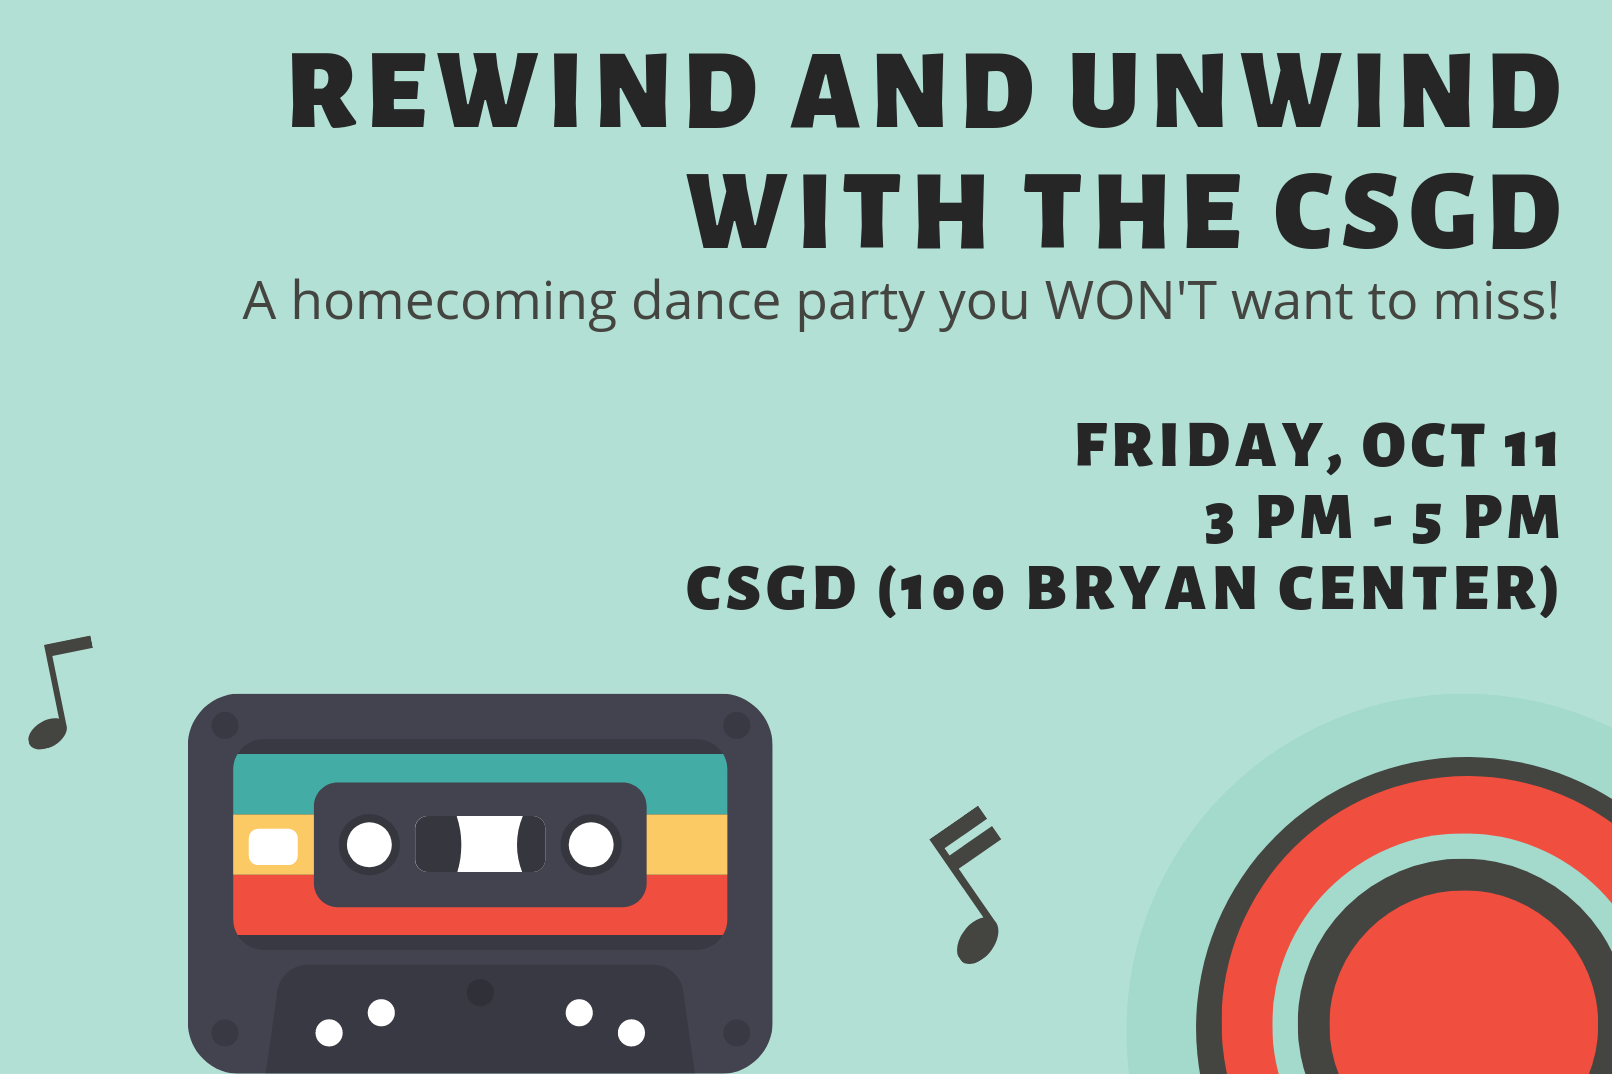 Text: Rewind and Unwind with the CSGD. A homecoming dance party you won't want to miss. Friday October 11 rom 3PM to 5 PM. Backgrount includes teal backdrop featuring images of cassette tape and music notes